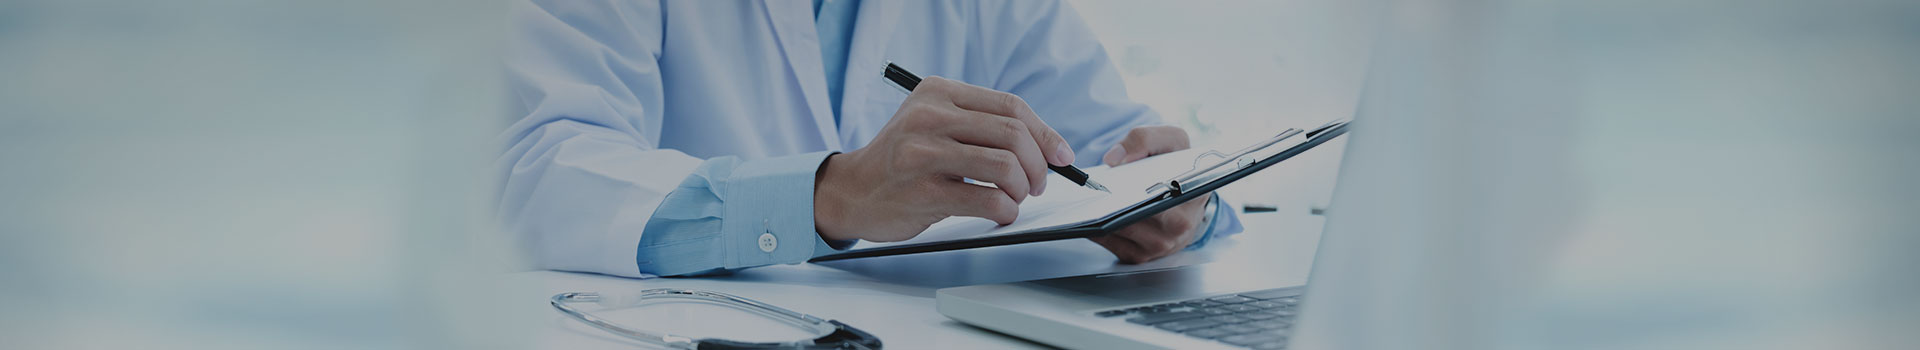 medical-transcription-or-clinical-document-management